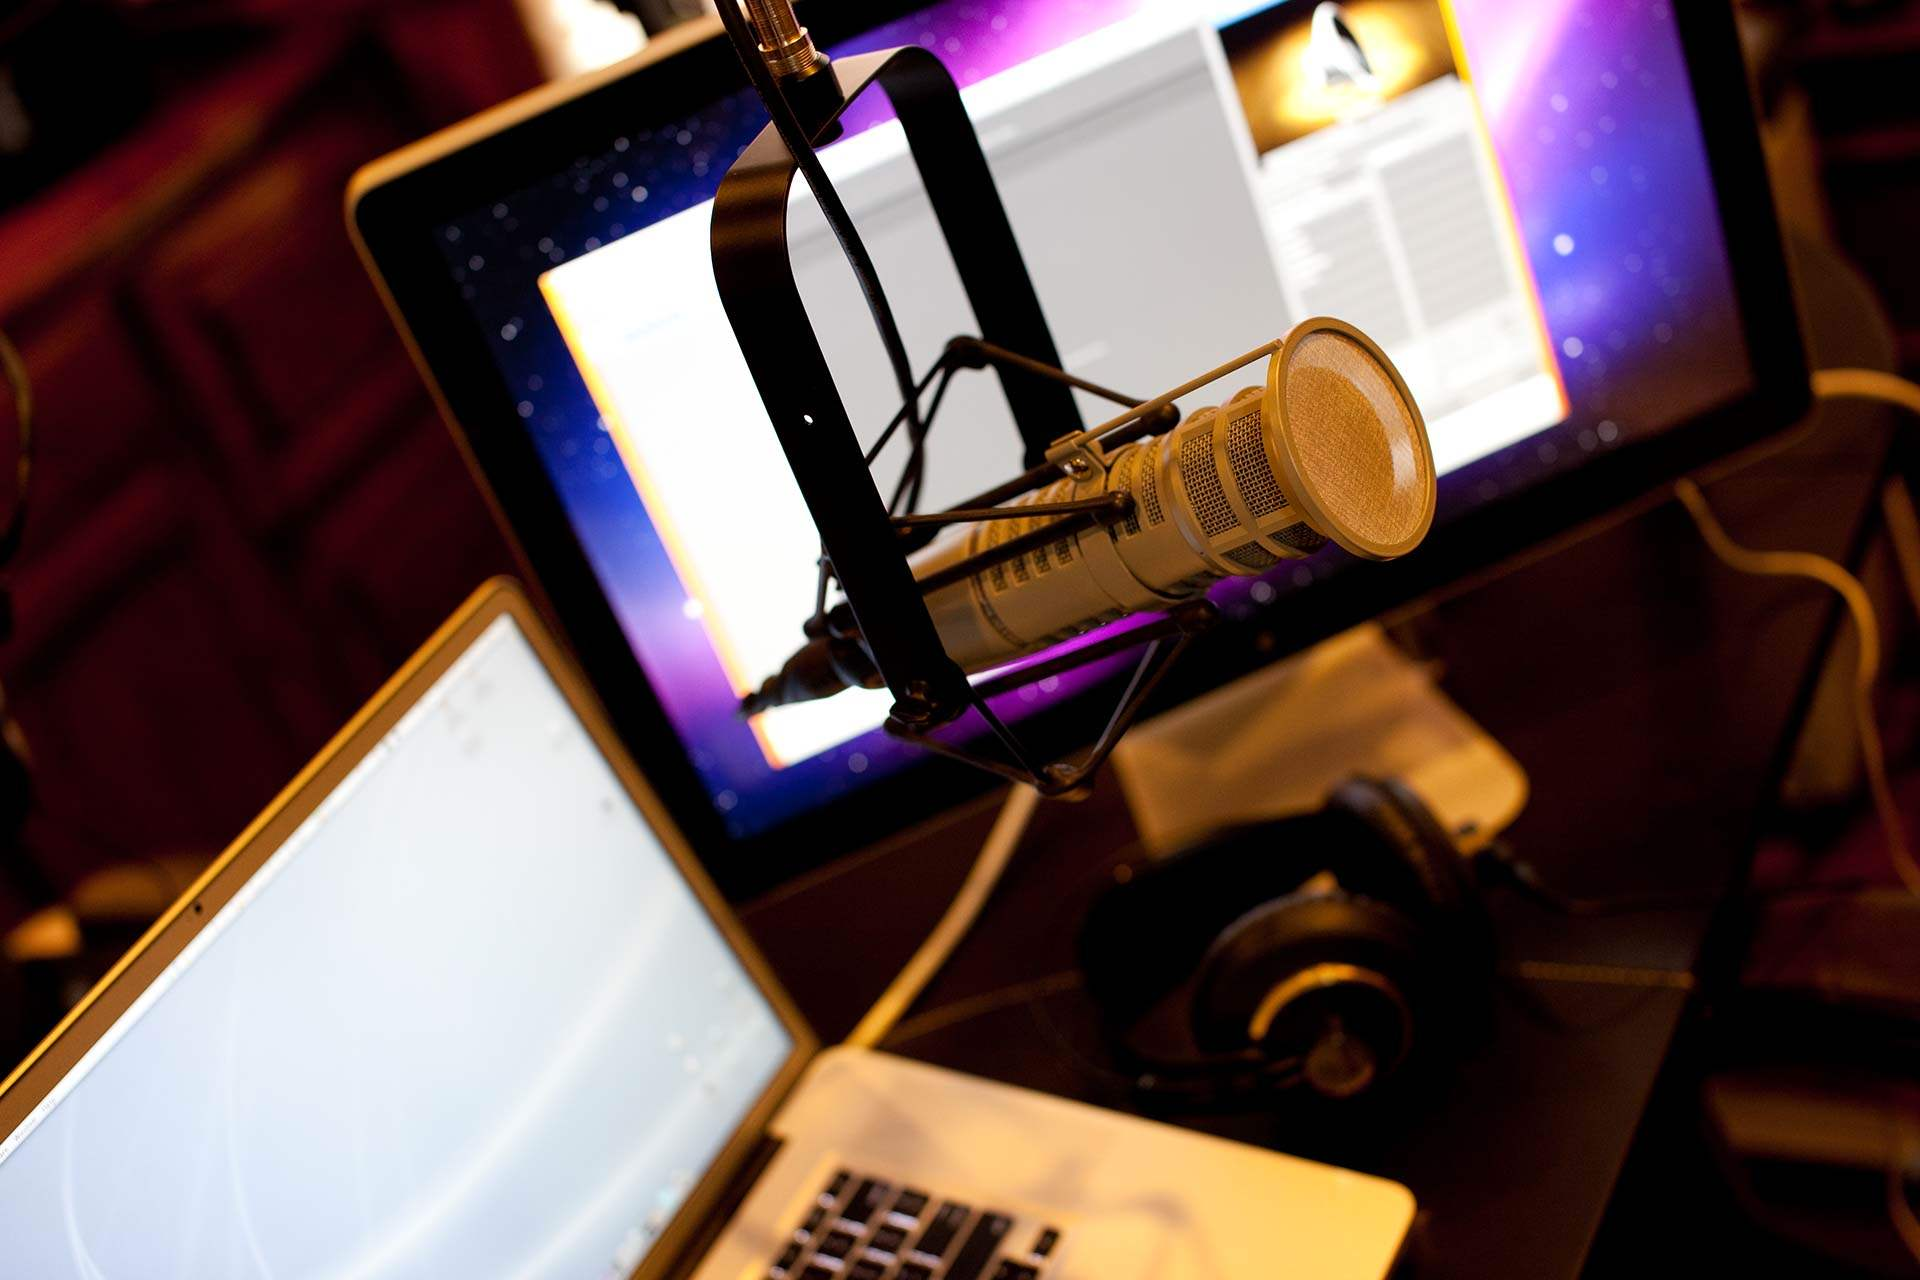 Mac Podcasting 101 Garageband Skype And The Behringer Xenyx 1202fx Studio Live Recording Setup 2010 Although Were Constantly Improving Updating Method Of Wealth Nation I Spent Day Going Through Setting Up A New Configuration